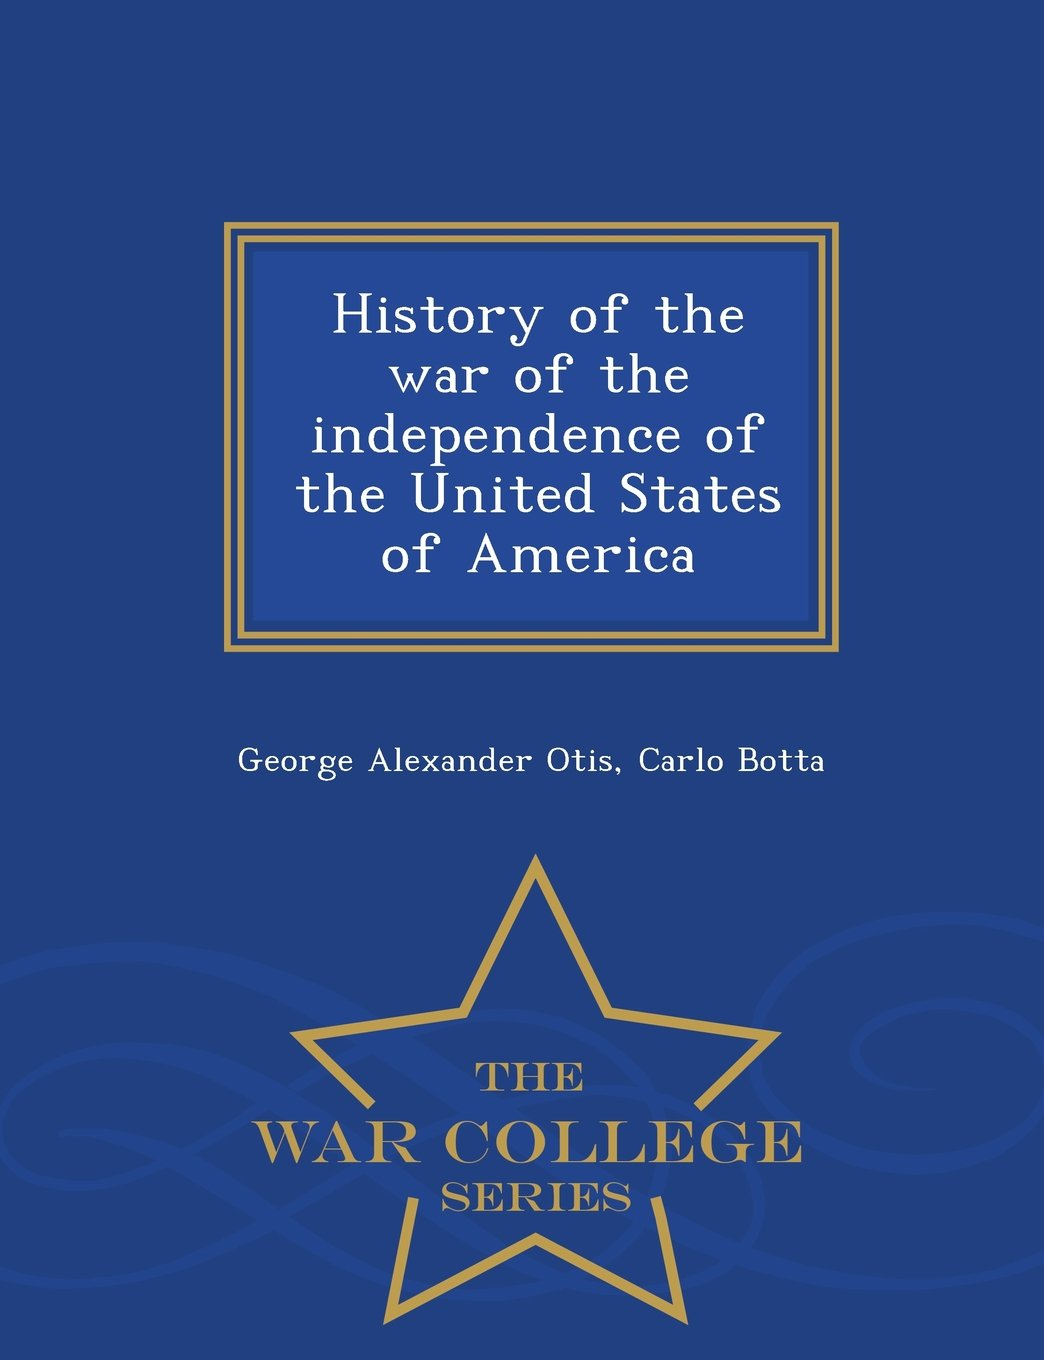 History of the war of the independence of the United States of America  - War College Series PDF